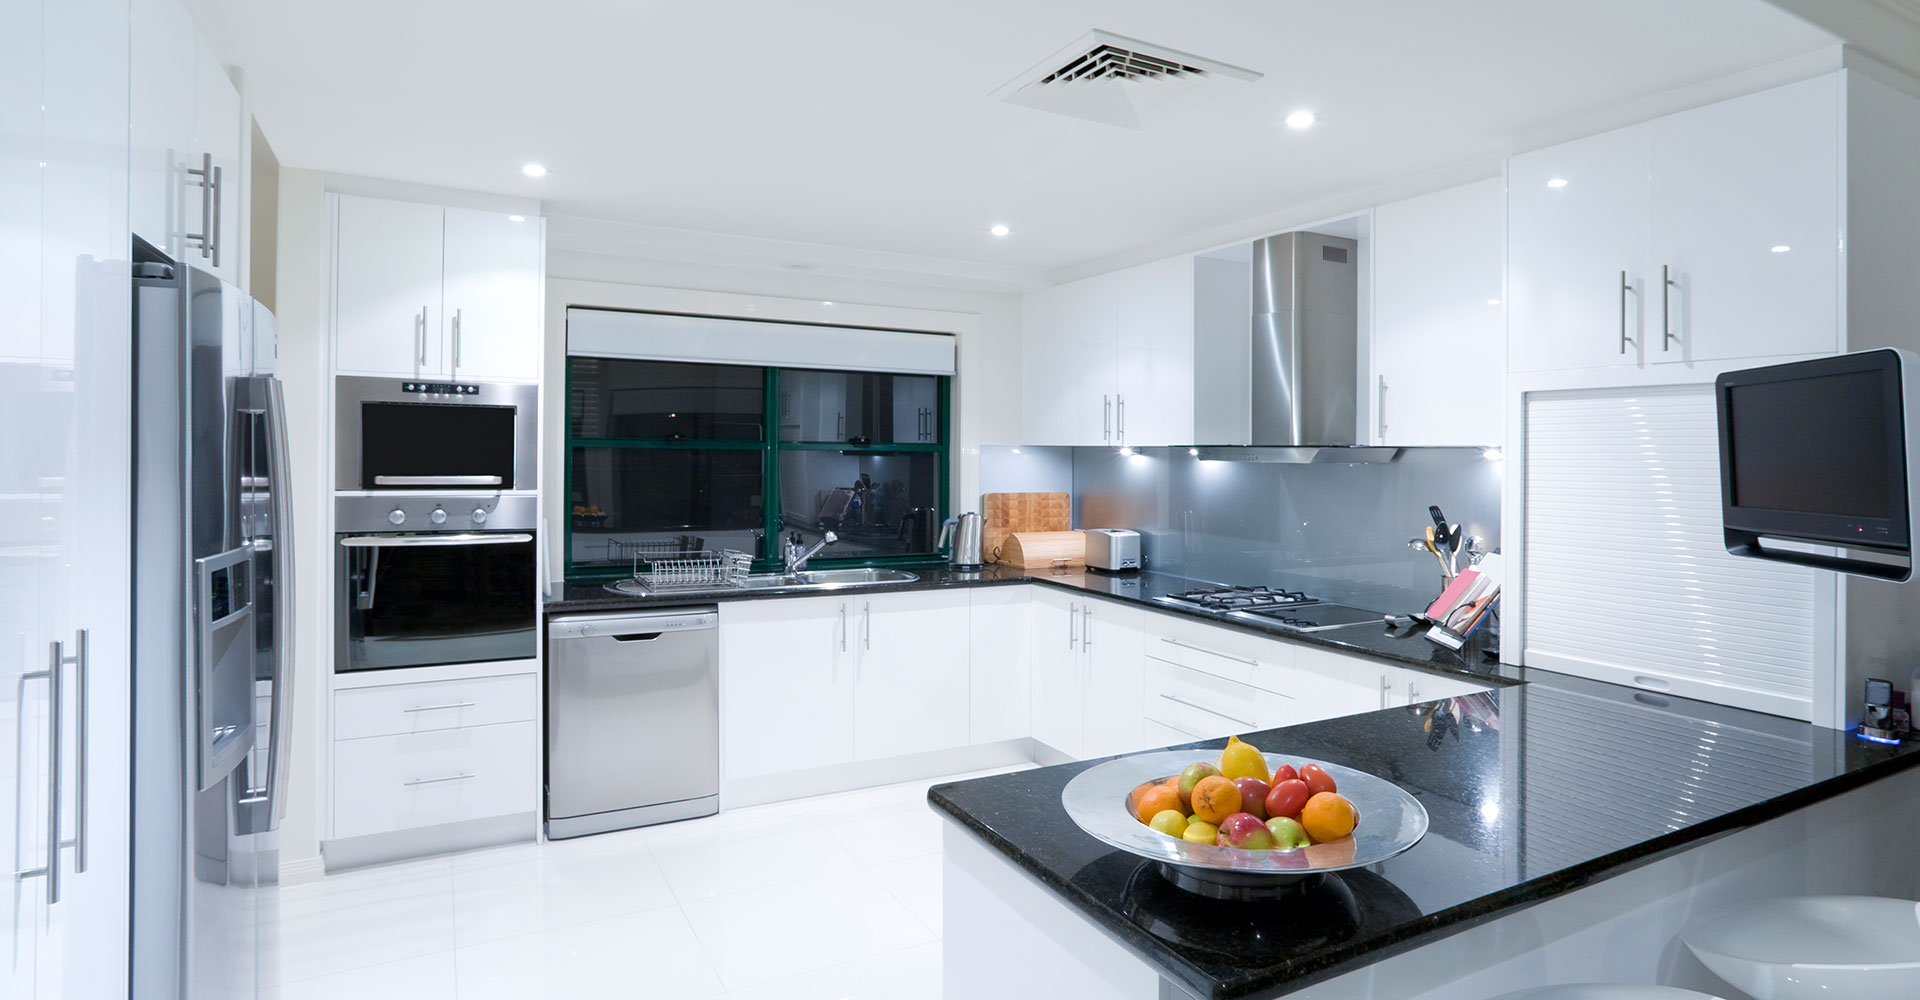 How do modern kitchen appliances make cooking easier and ease manual work?